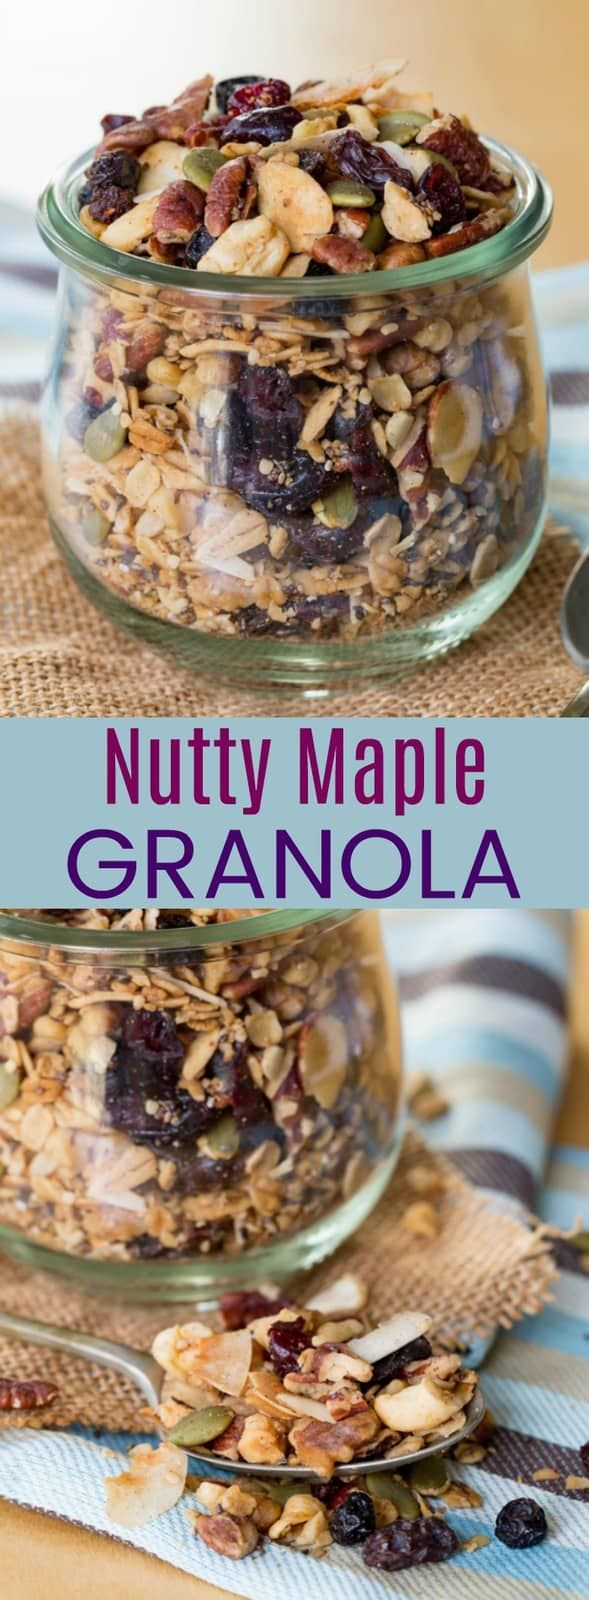 Nutty Maple Granola - this easy granola recipe is packed with oats, nuts, seeds, and dried fruit, plus a bit of maple syrup for a healthy breakfast or snack. It's also gluten-free, dairy-free, and vegan! #granola #granolarecipe #glutenfree #vegan #dairyfree #glutenfreerecipe #healthysnack #breakfast #cupcakesandkalechips